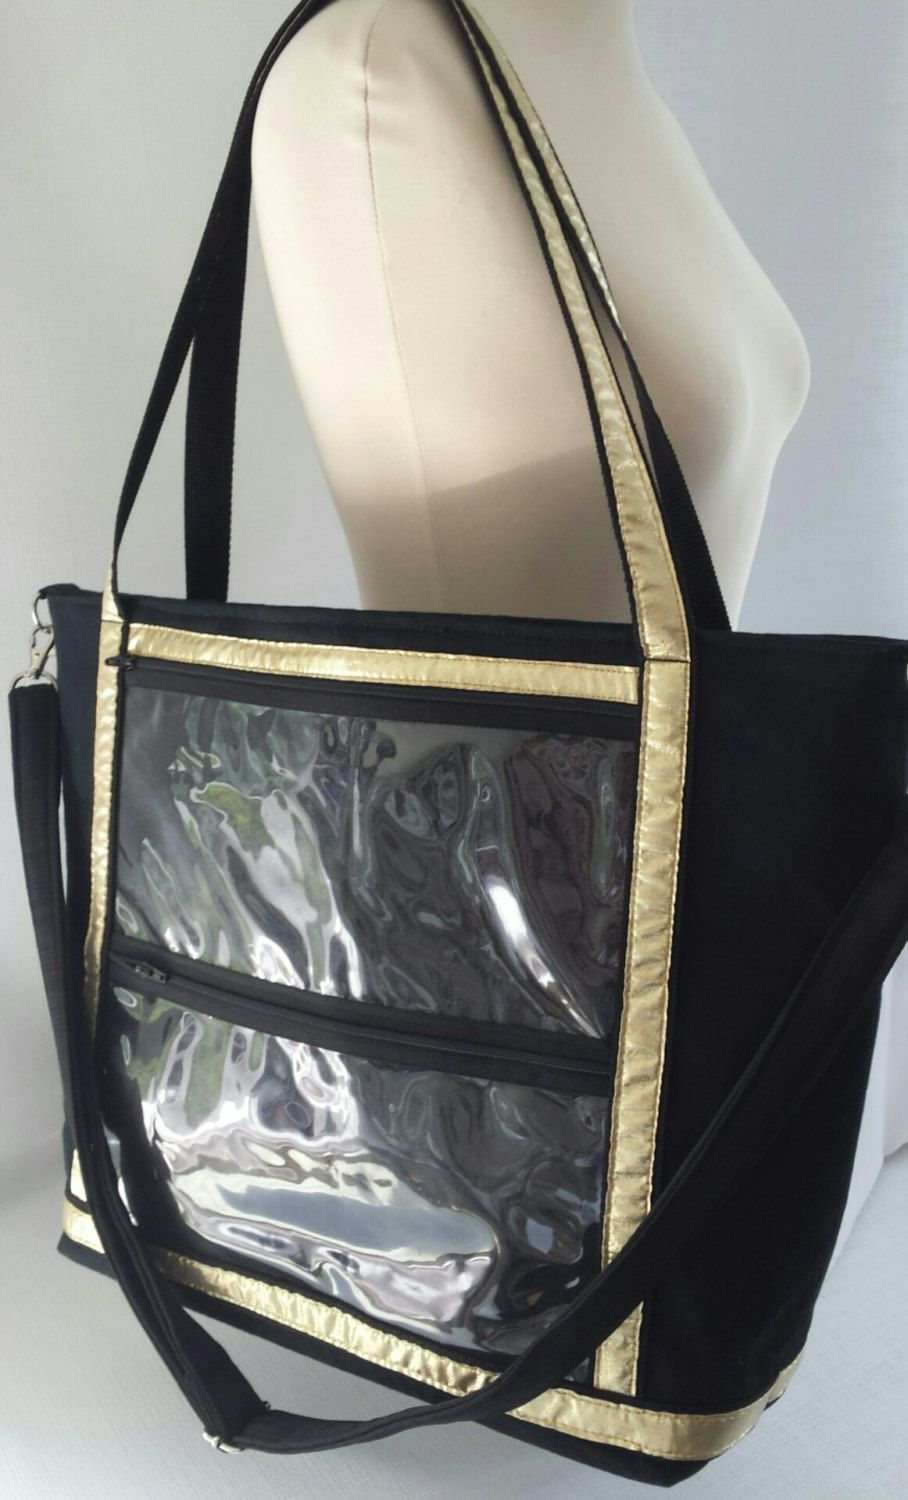 6e8667277e ... Tote bag. .direct sales reps clear window advertise biz bag. cross body  bag. shoulder bag..see through pocket catalogue by Trendytotesbydeb on Etsy